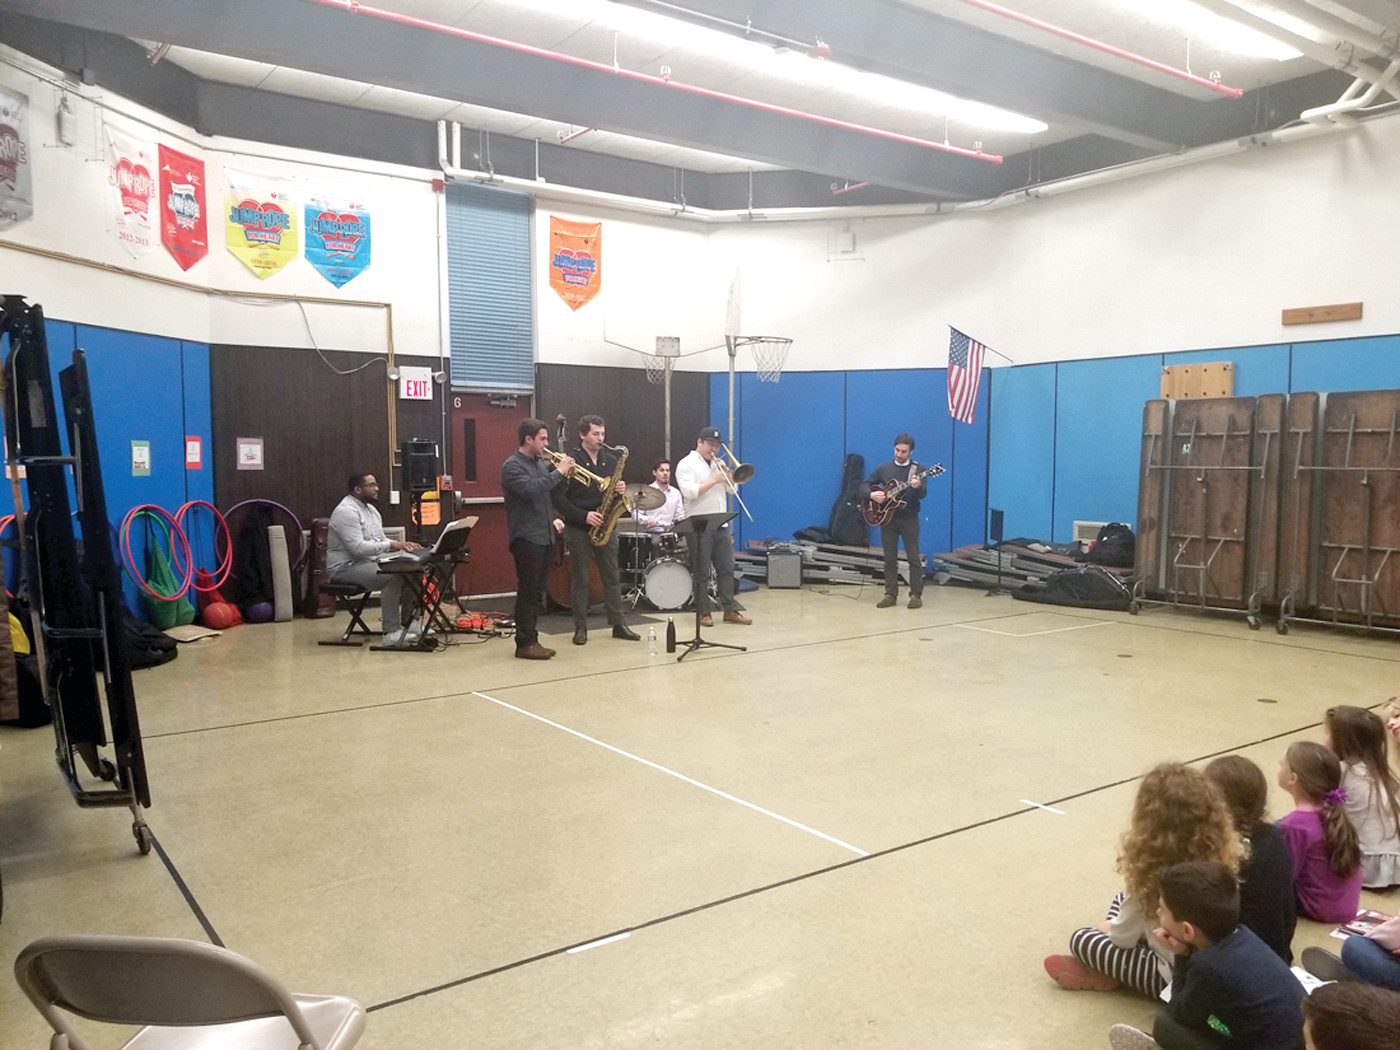 AND ALL THAT JAZZ: Members of the Newport Jazz Assembly band entertain the students of Oaklawn Elementary school on Tuesday, January 23.